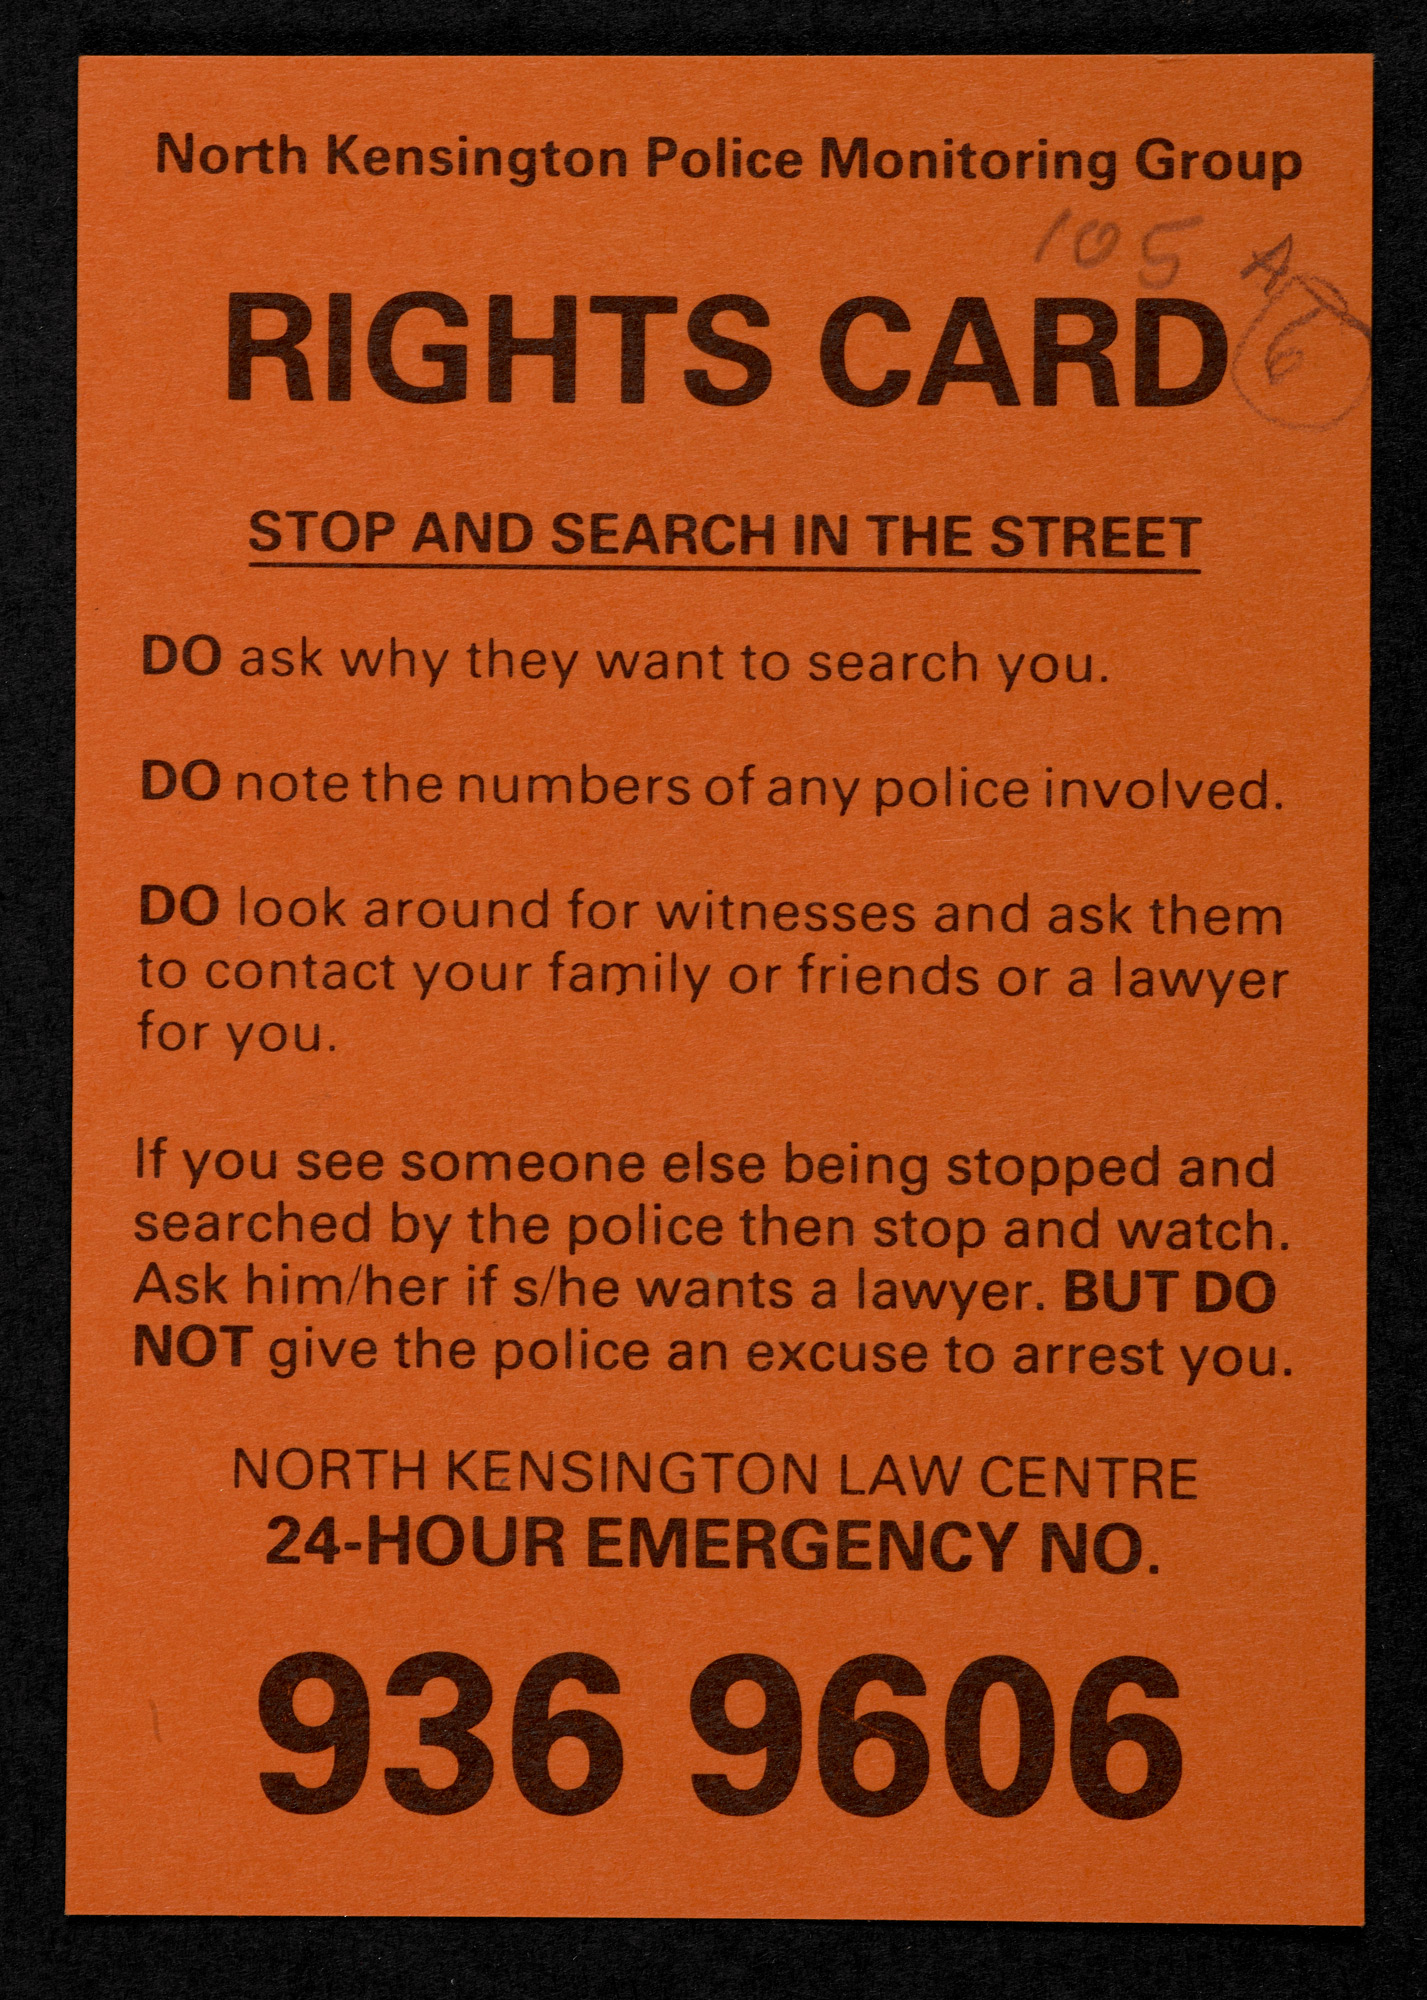 North Kensington Police Monitoring Group, citizen's rights card